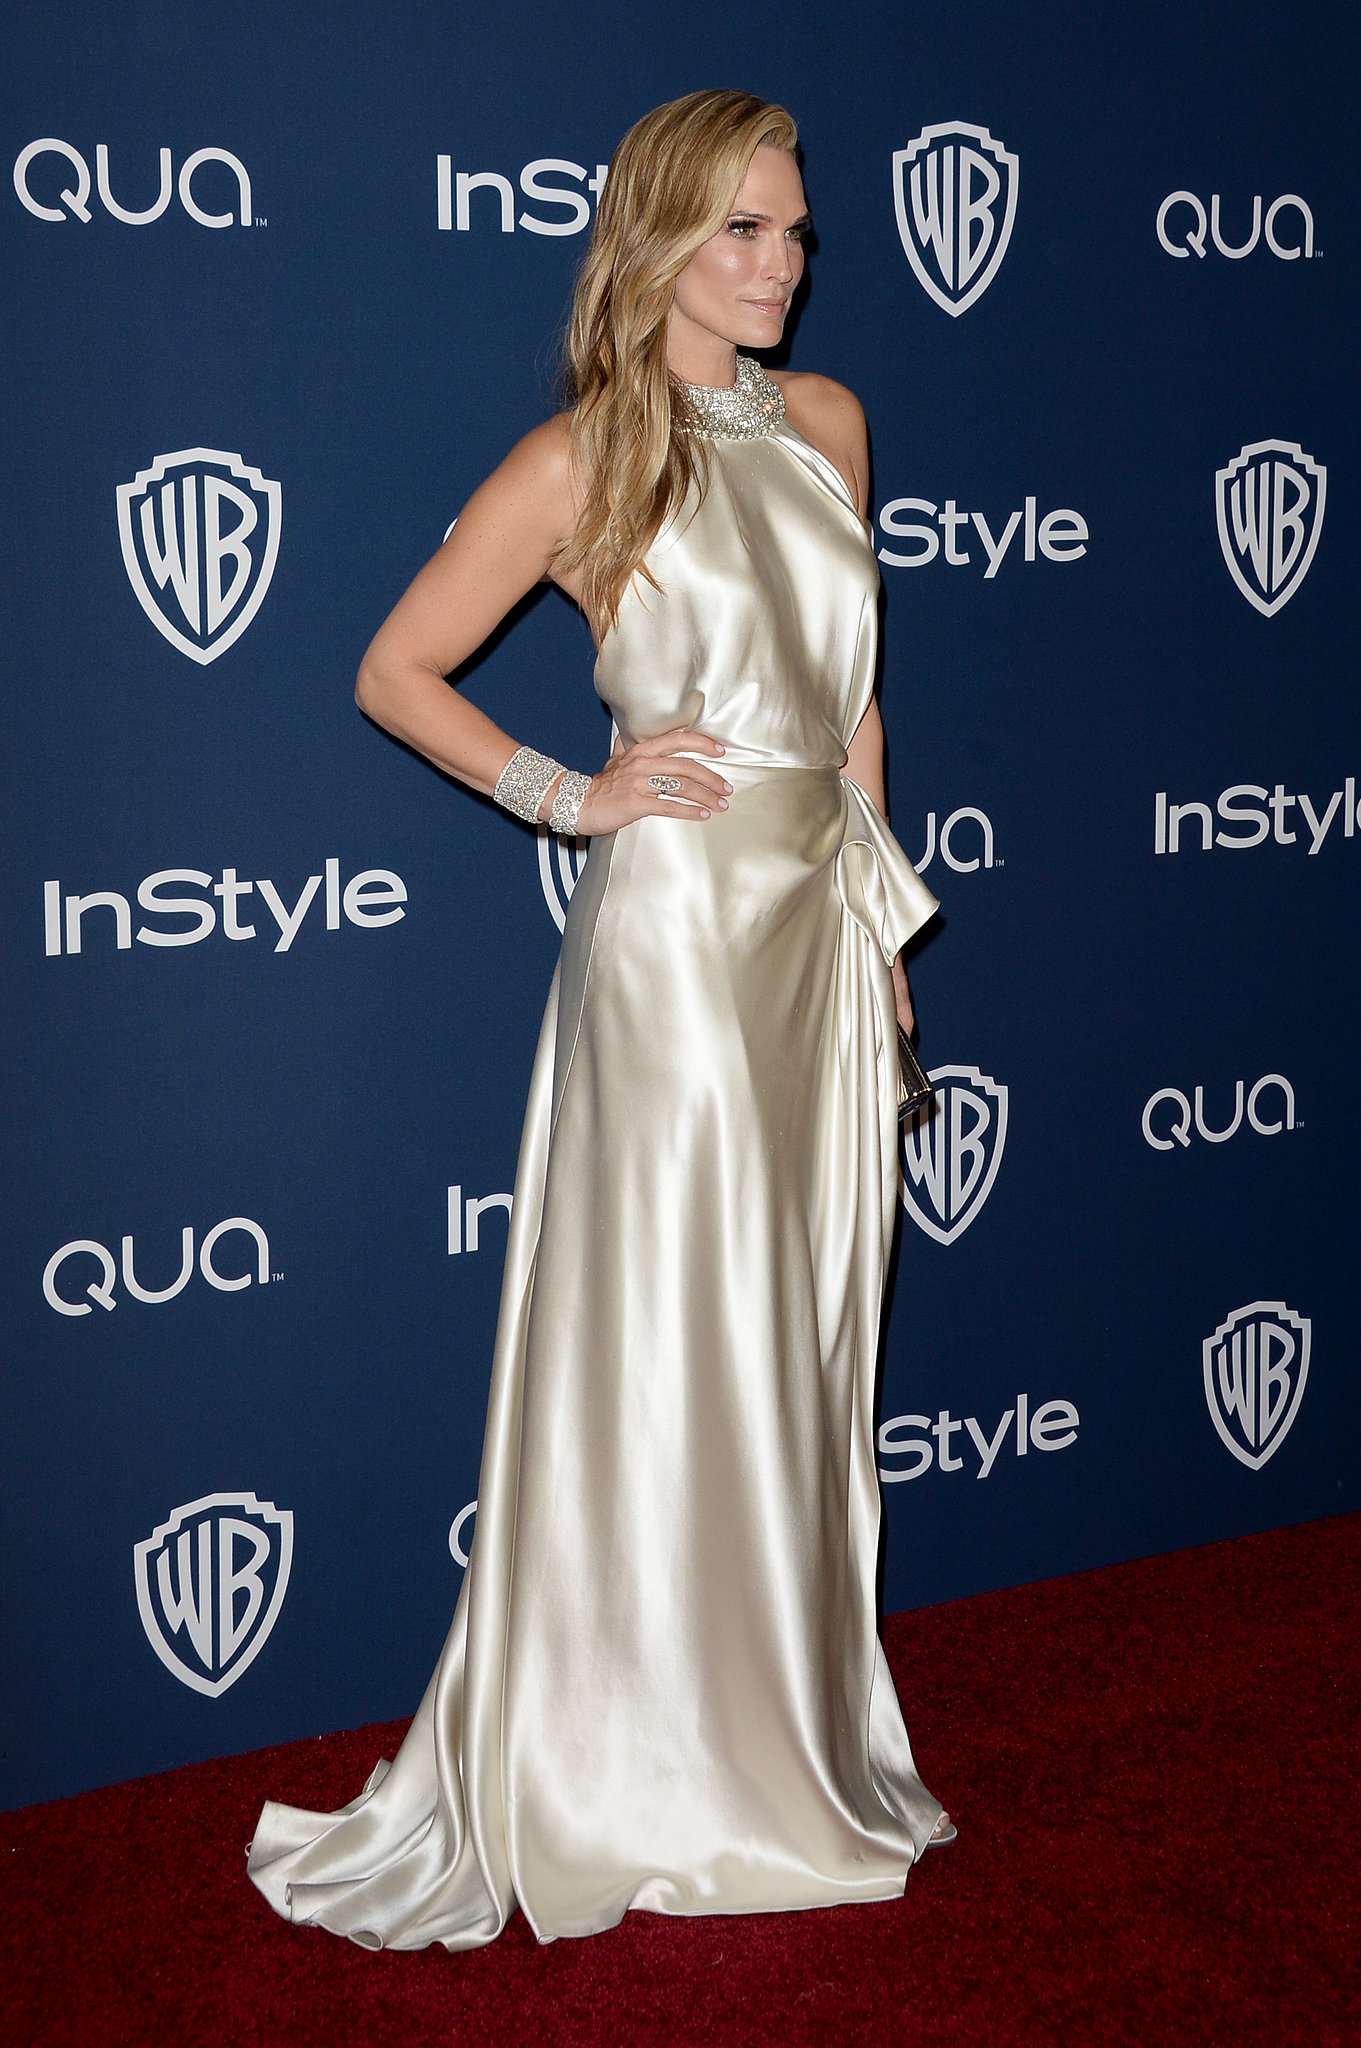 Molly Sims at the InStyle Golden Globes party.